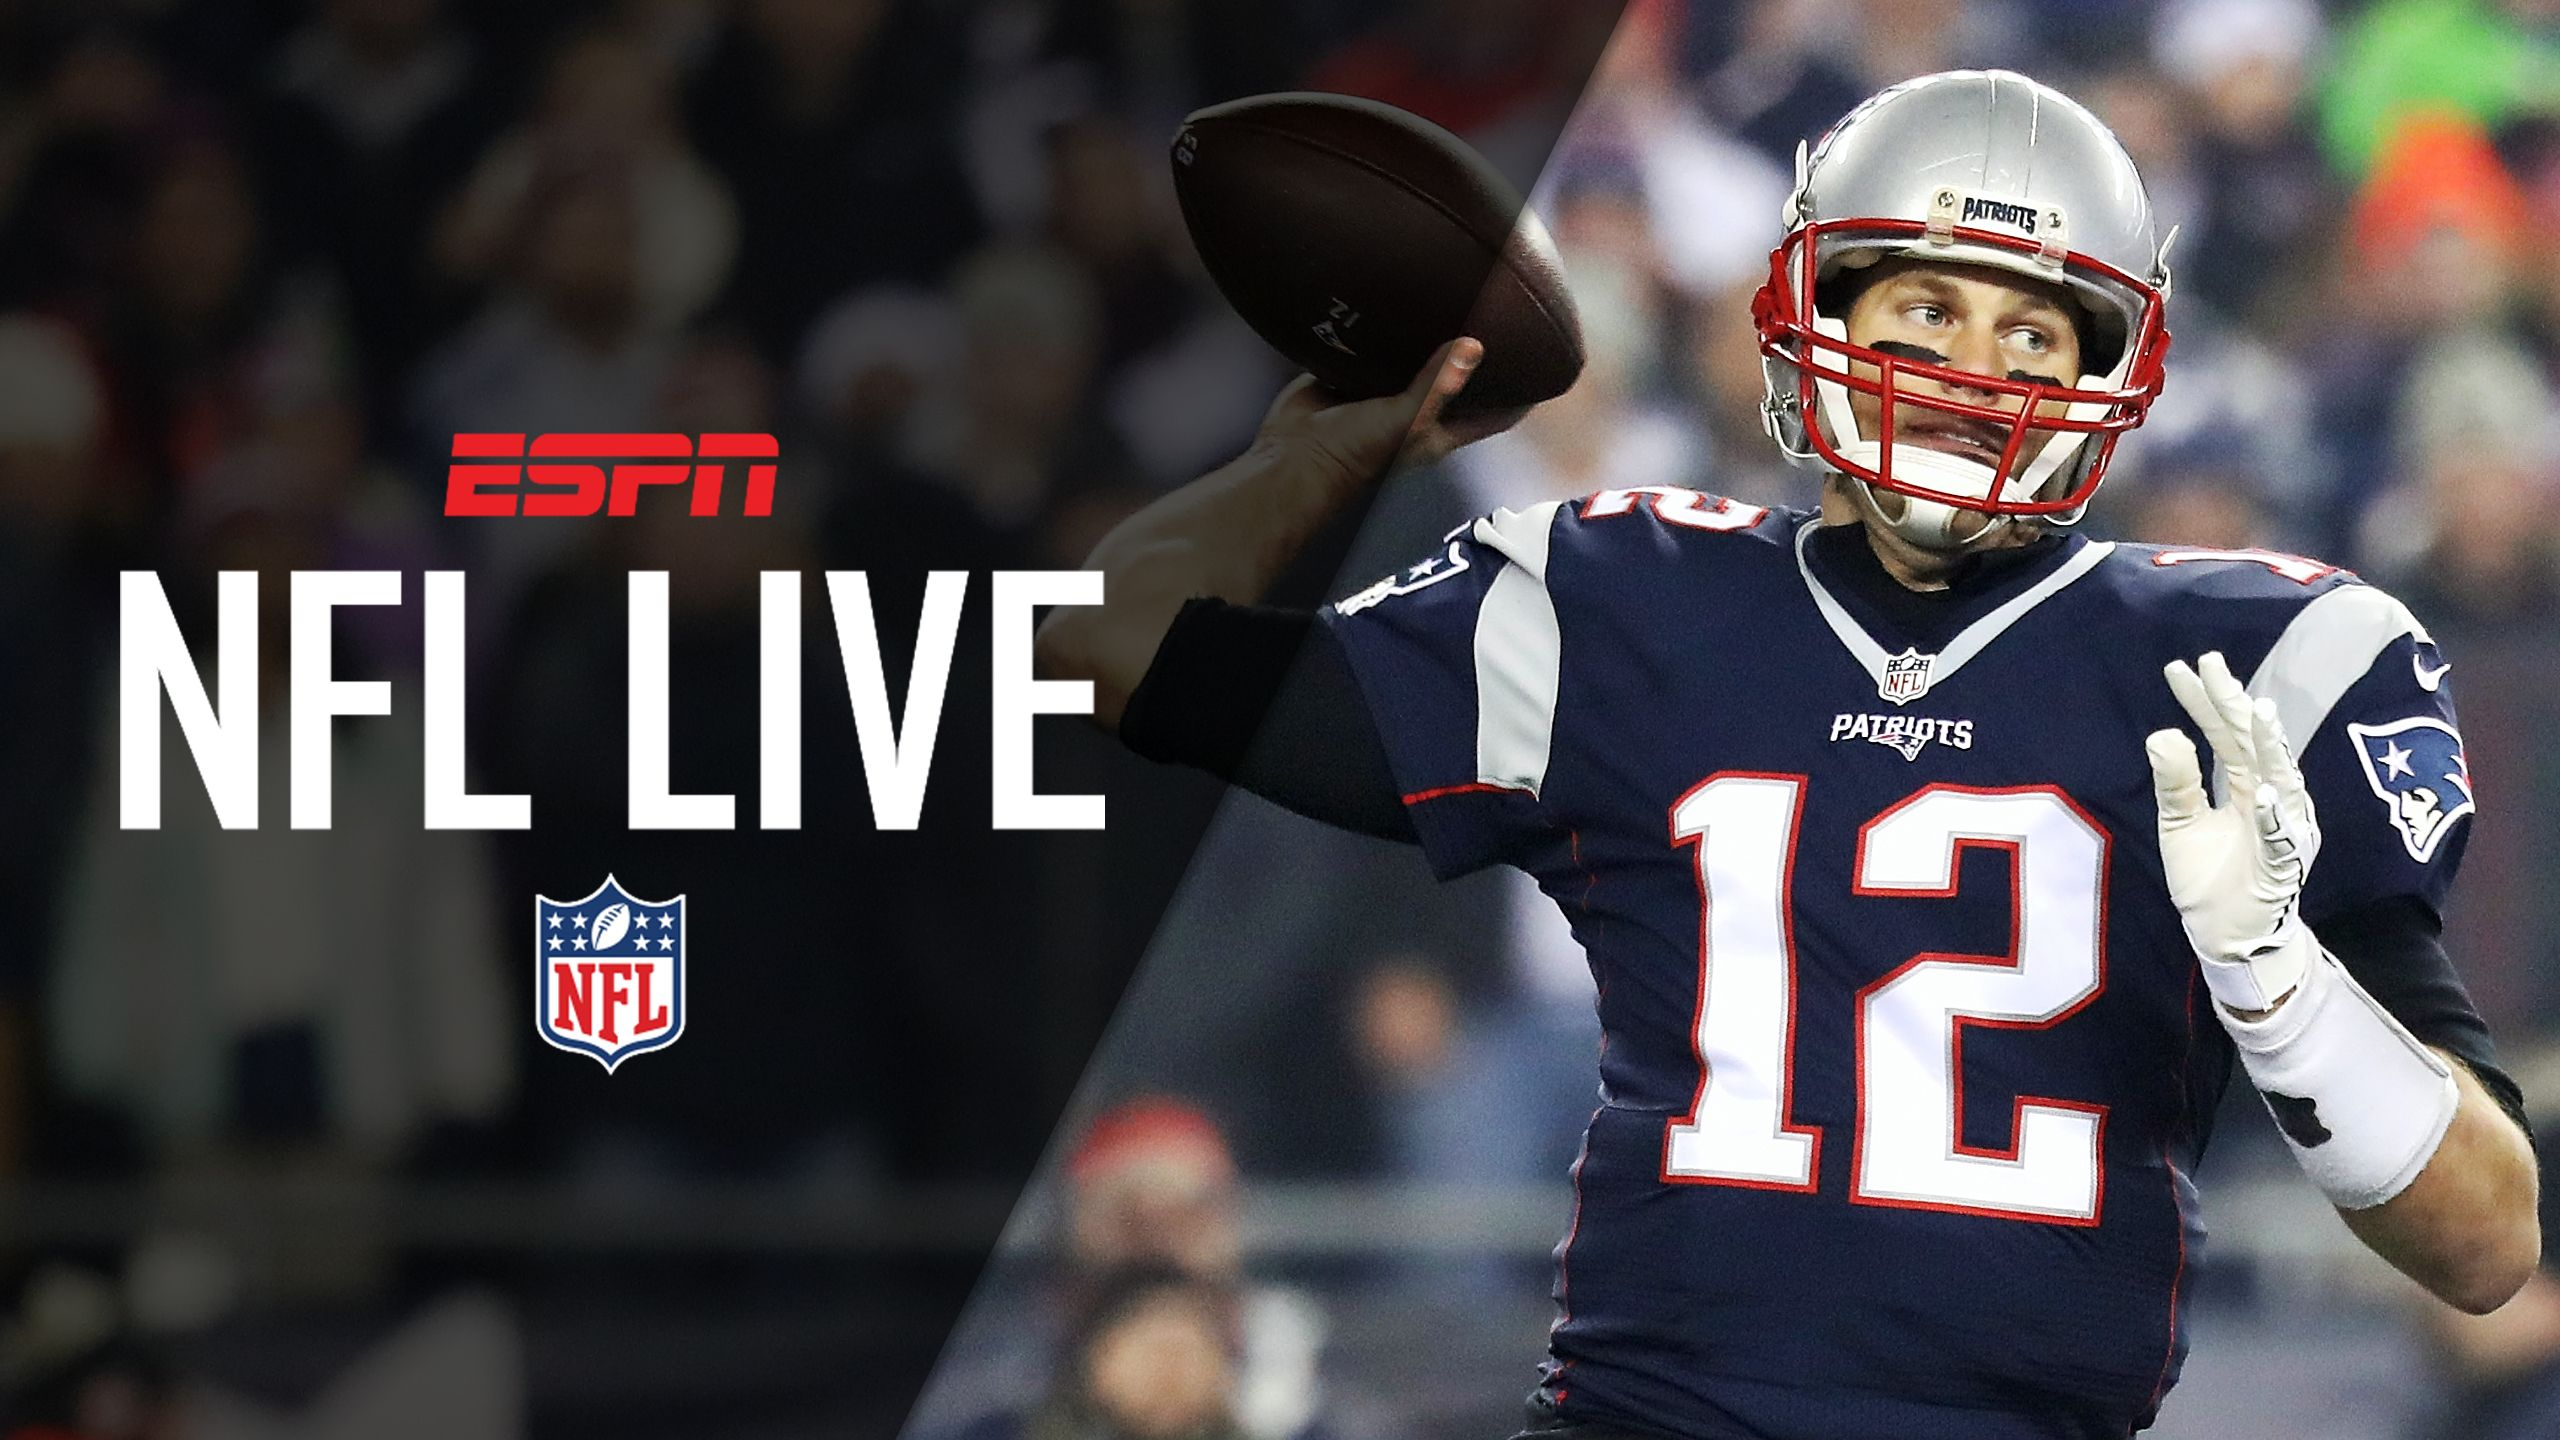 go horsebetting nfl live for free